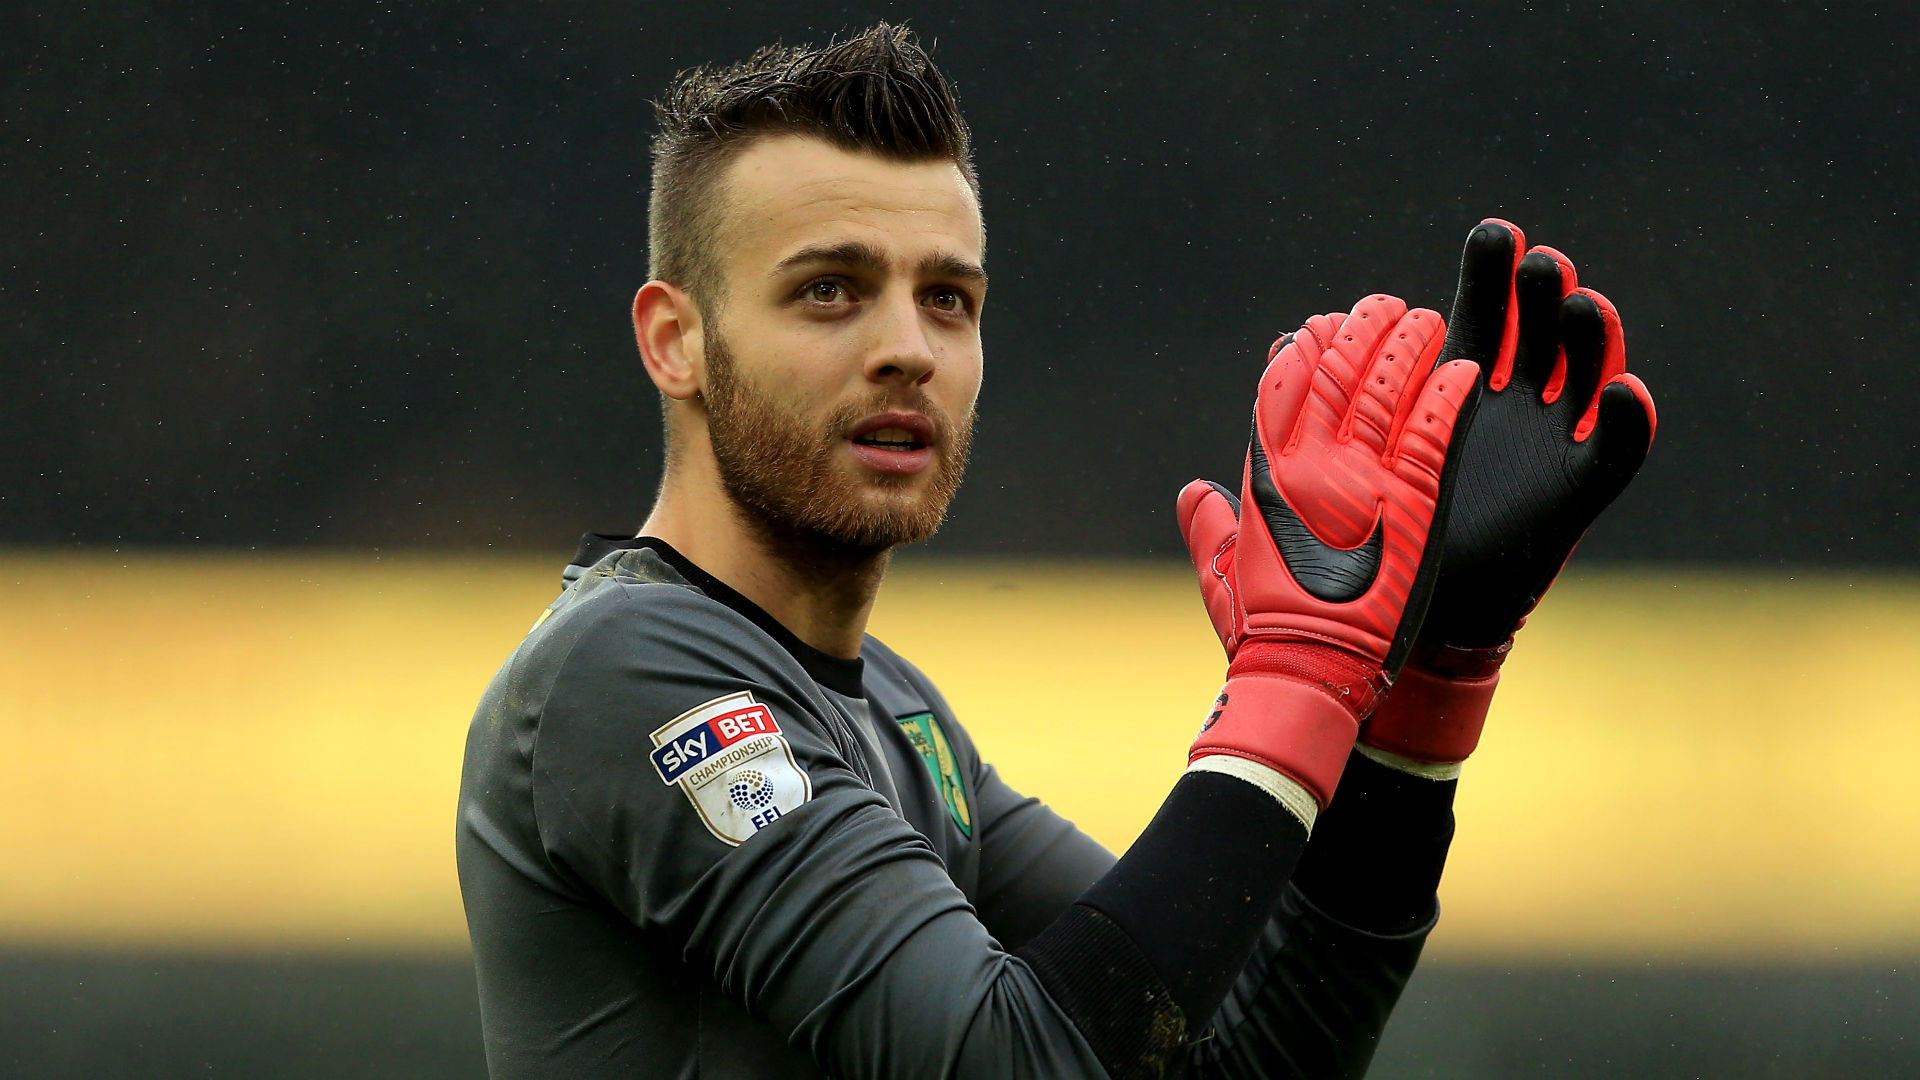 Southampton in talks to sign Manchester City goalkeeper Angus Gunn for £15m